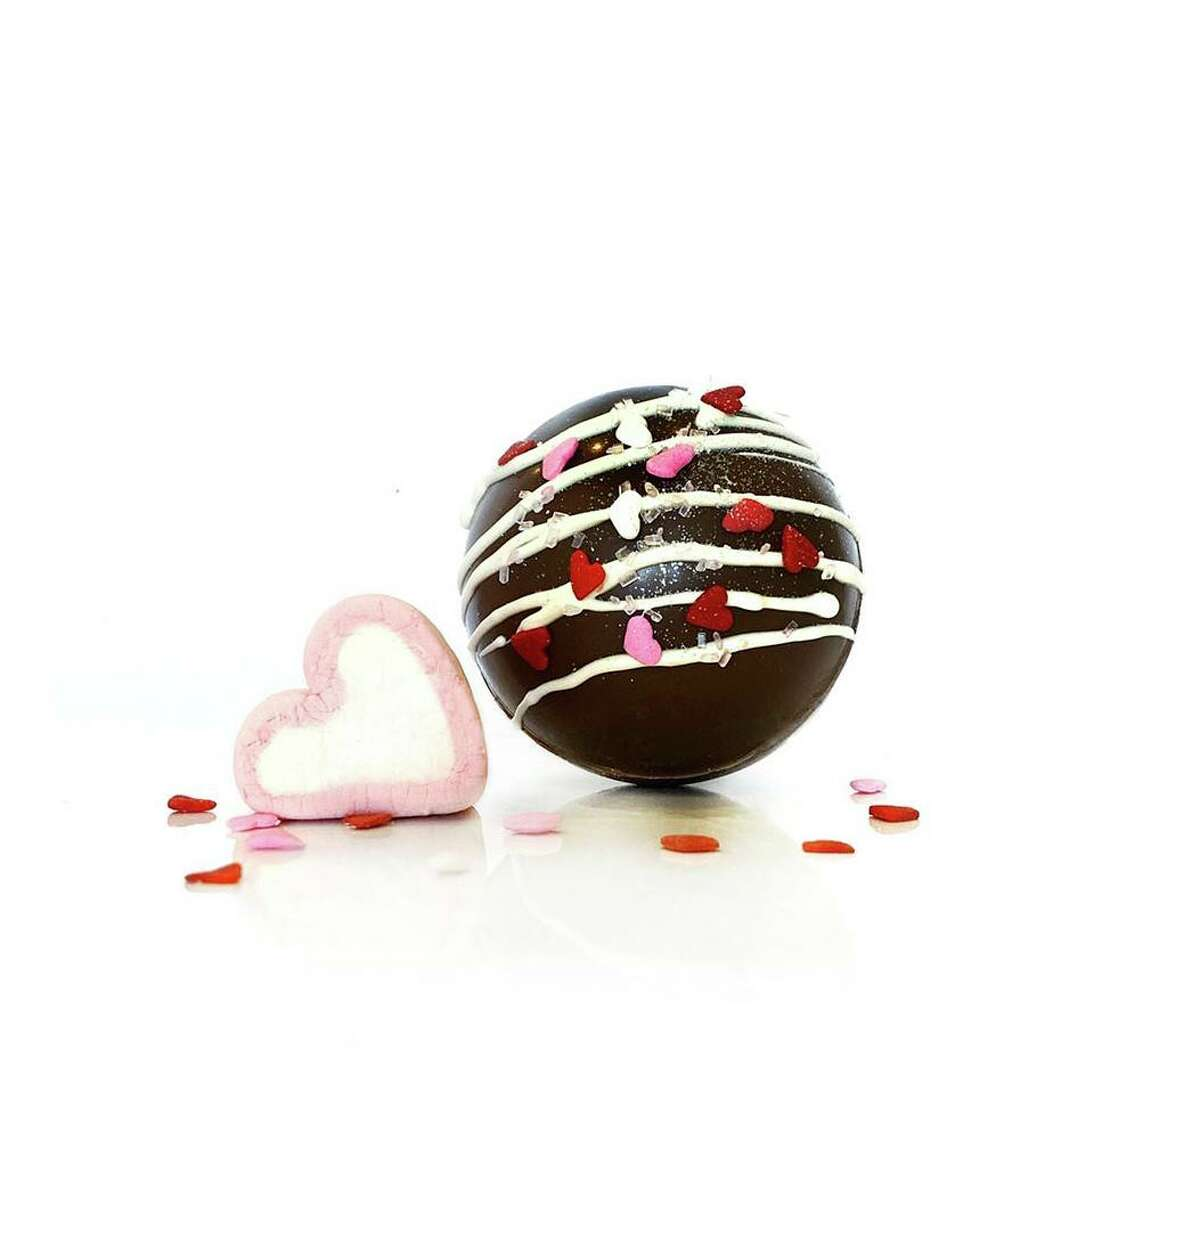 Castle Hill Chocolate is offering a variety of bonbons for Valentine's Day.